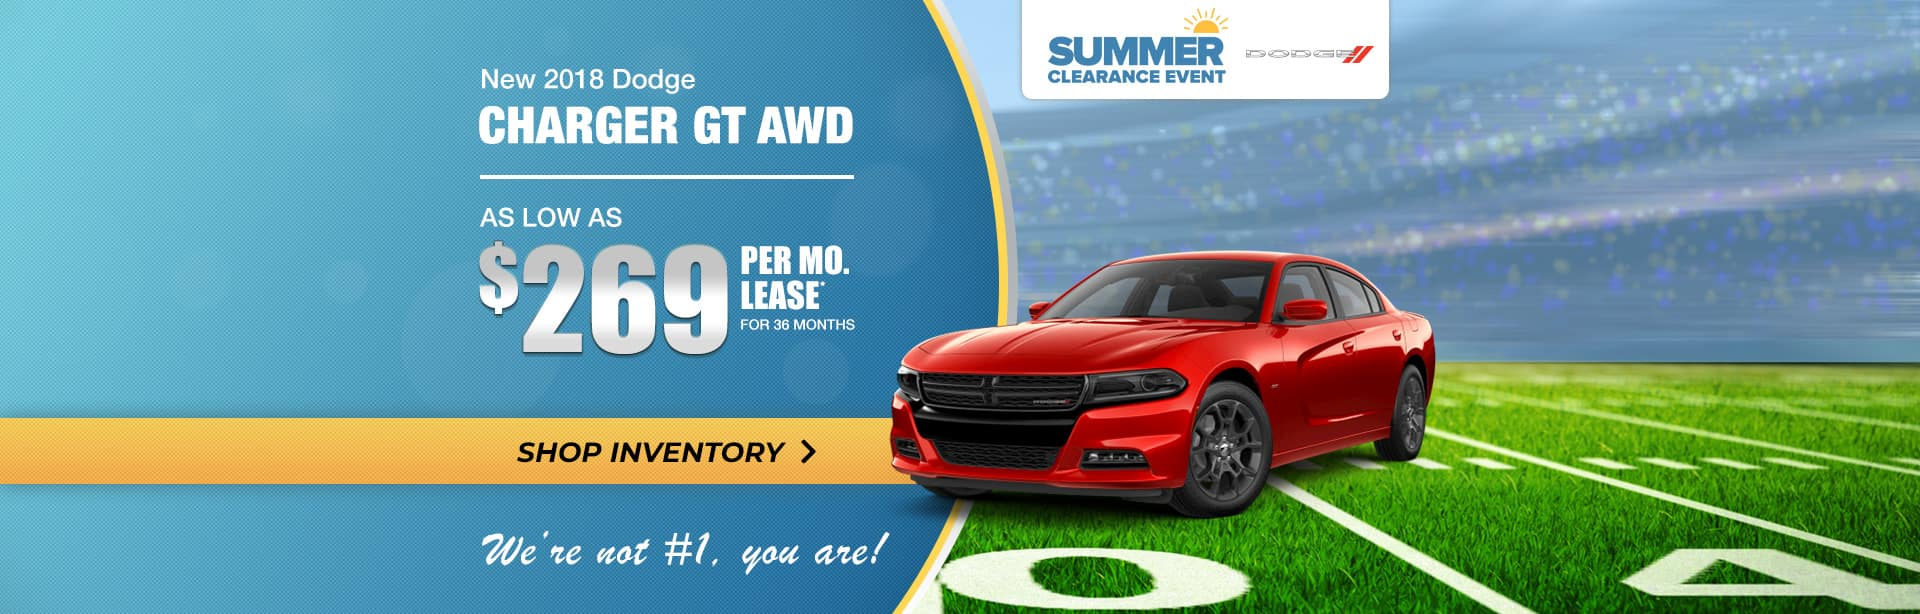 2018 Dodge Charger Summer Clearance near Lafayette, Indiana.